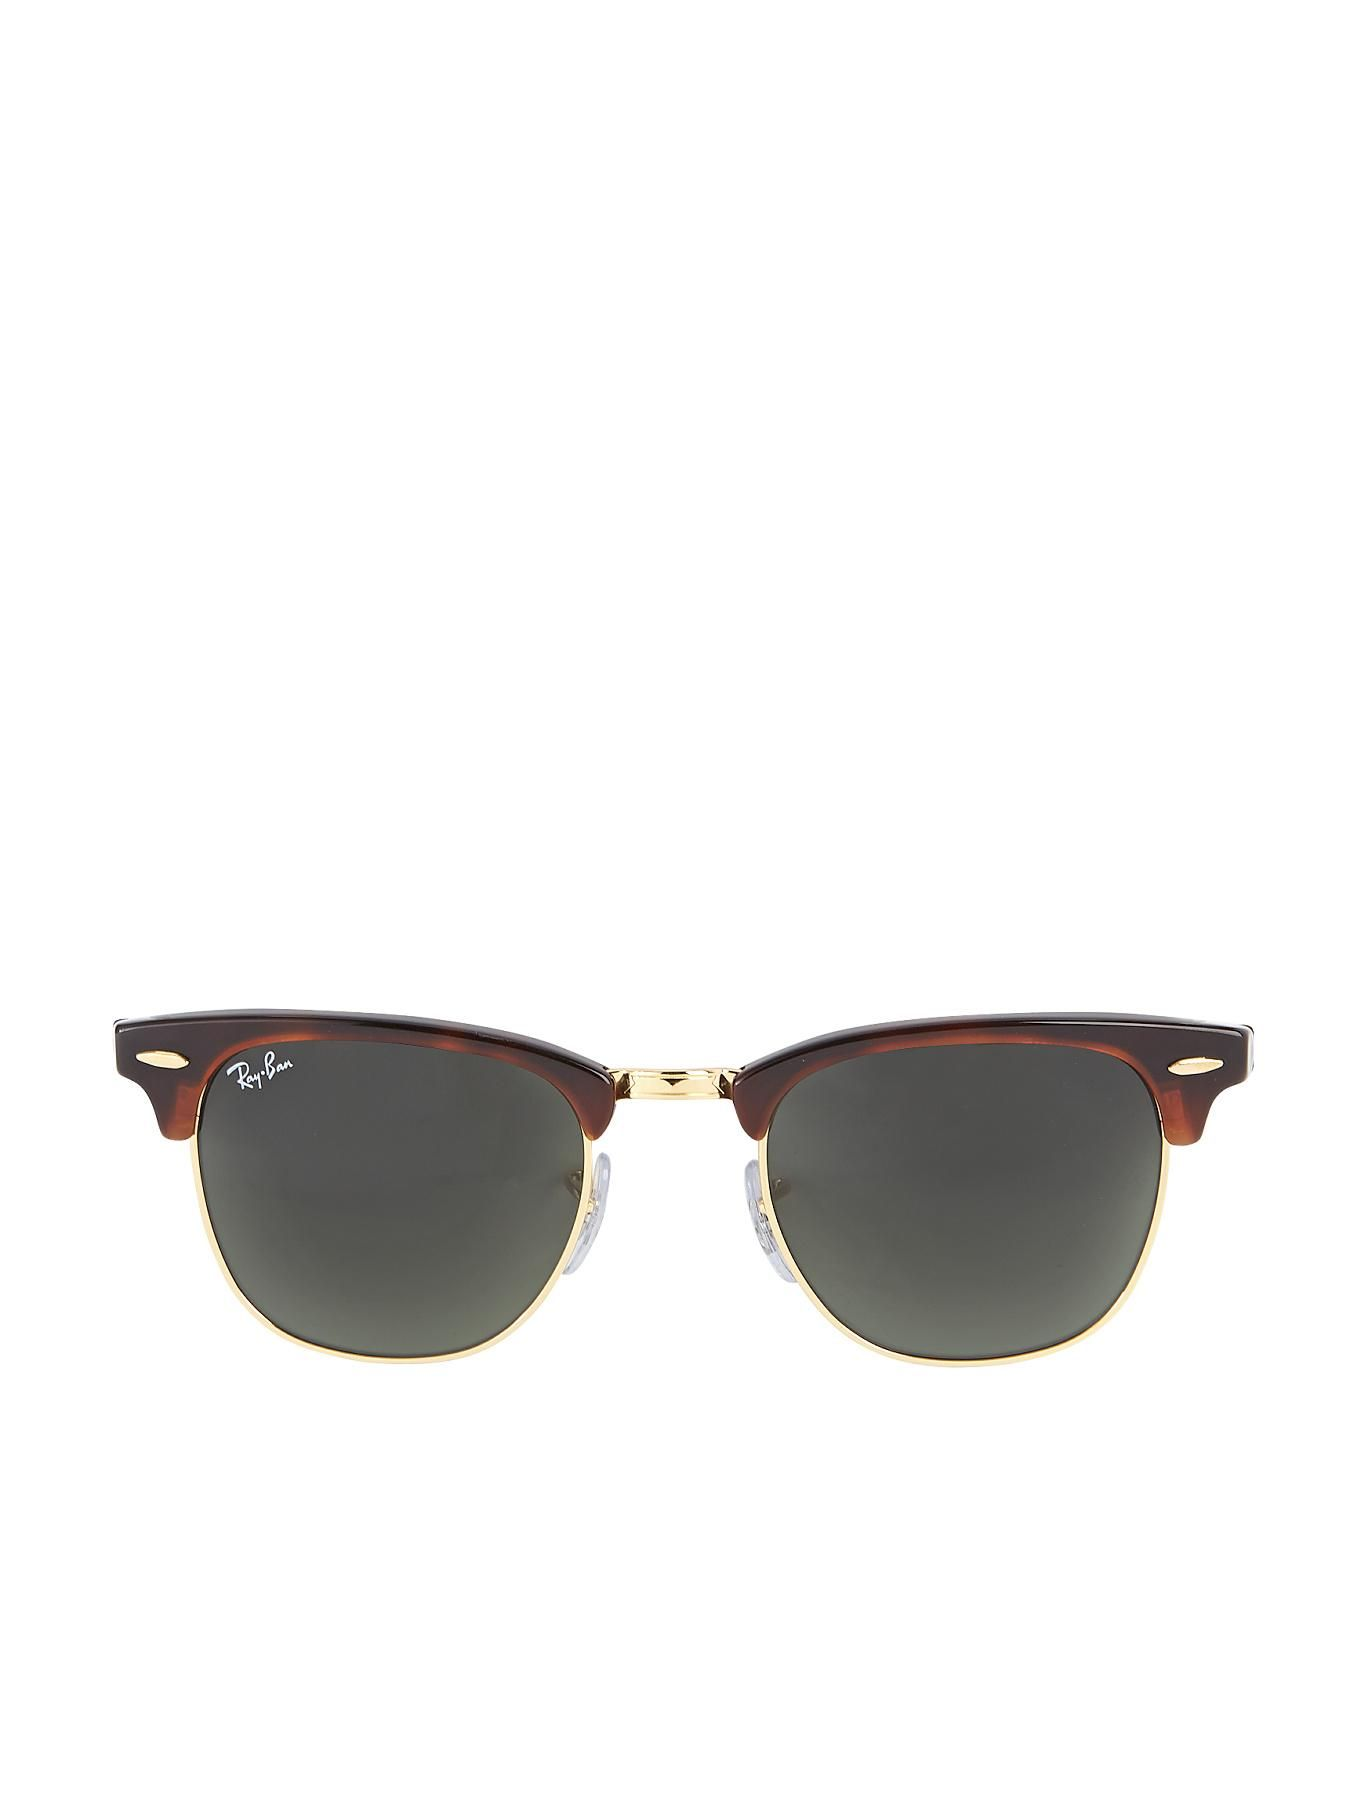 Ray Ban Clubmaster Sunglasses   very.co.uk   Fashion